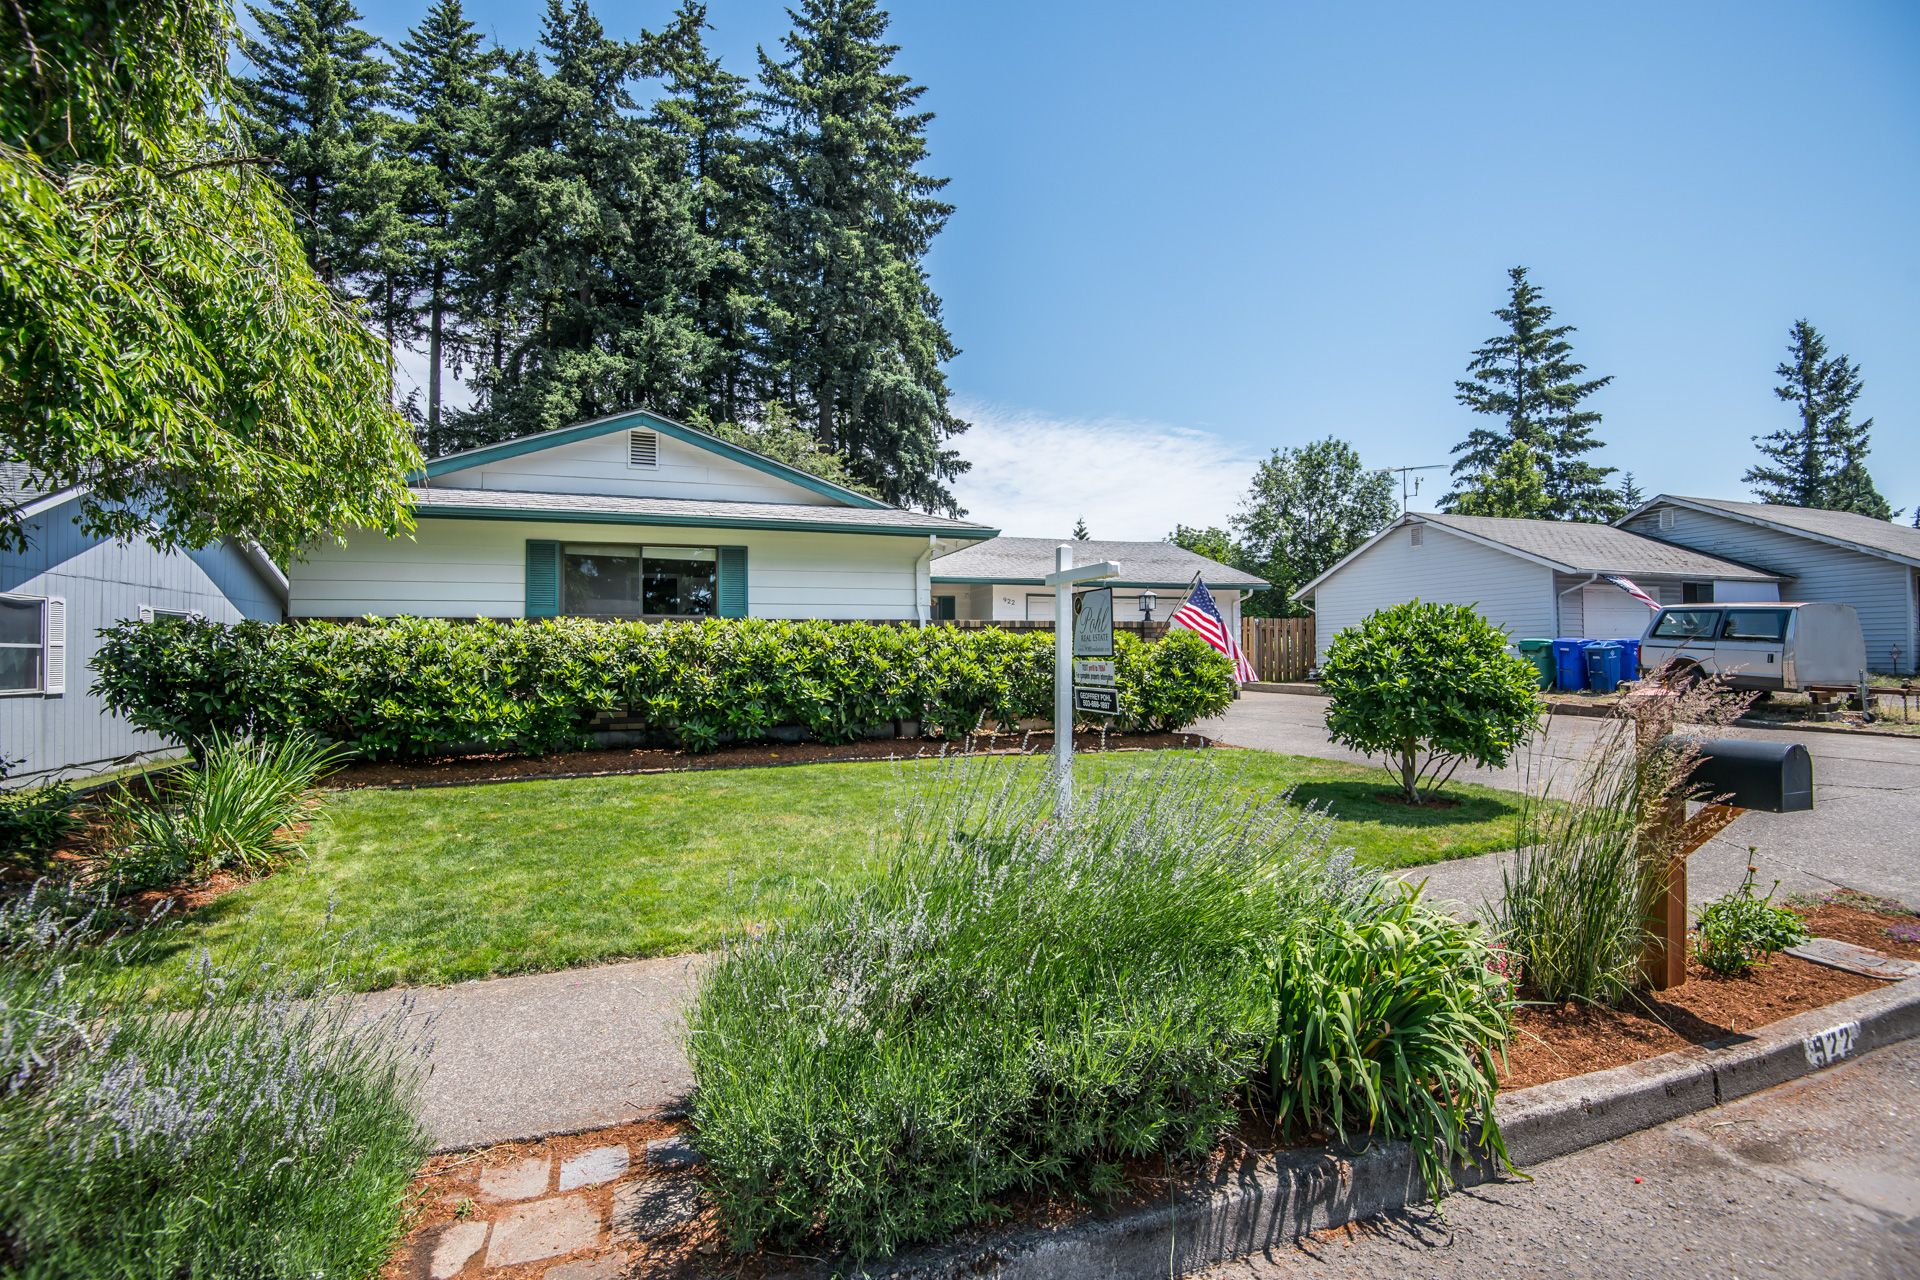 9d2a51de4ab9cfb145d6d1e979f5af46 - Better Homes And Gardens Real Estate Portland